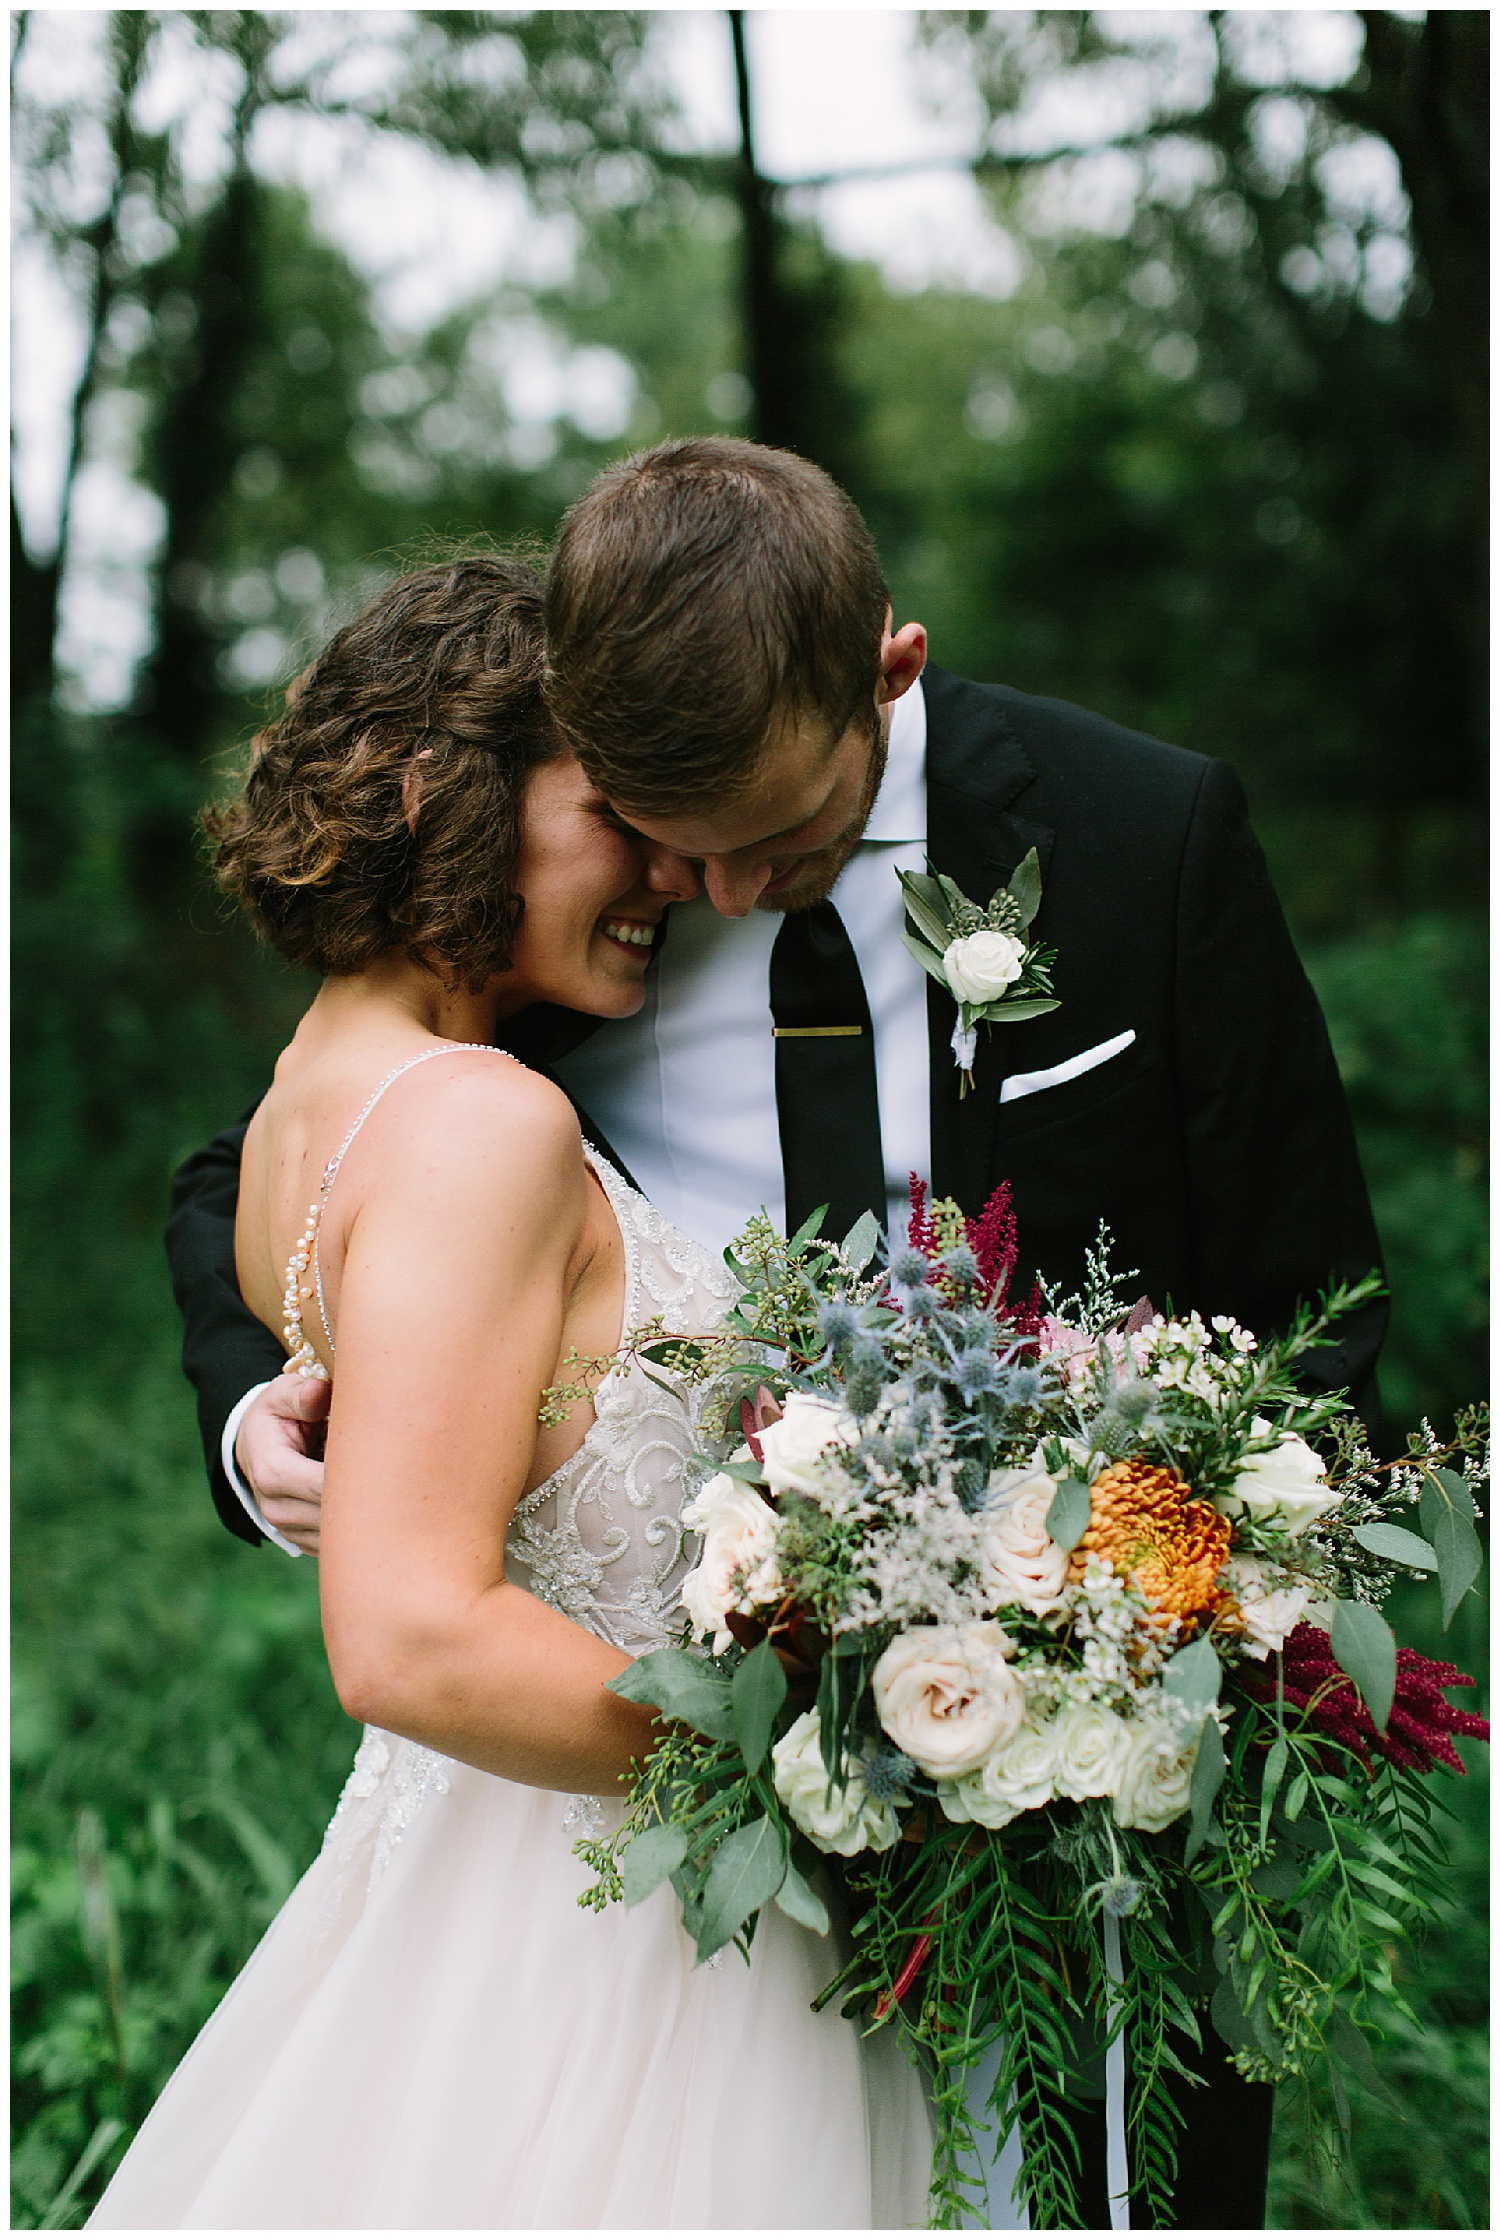 trent.and.kendra.photography.wedding.louisville-160.jpg